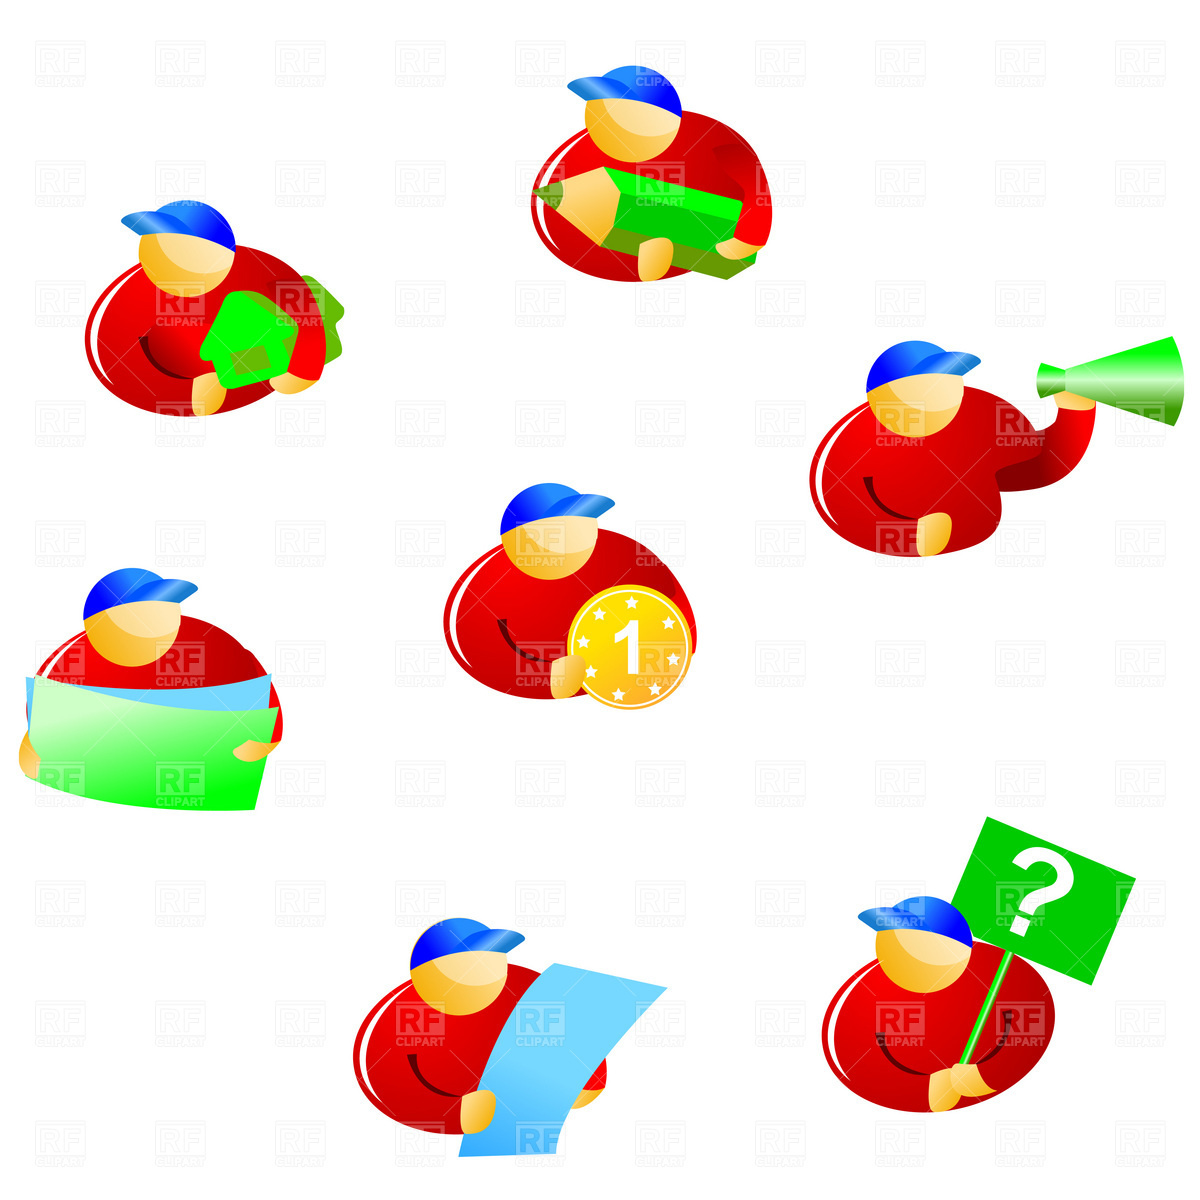 Advertising icons Vector Image #1807.